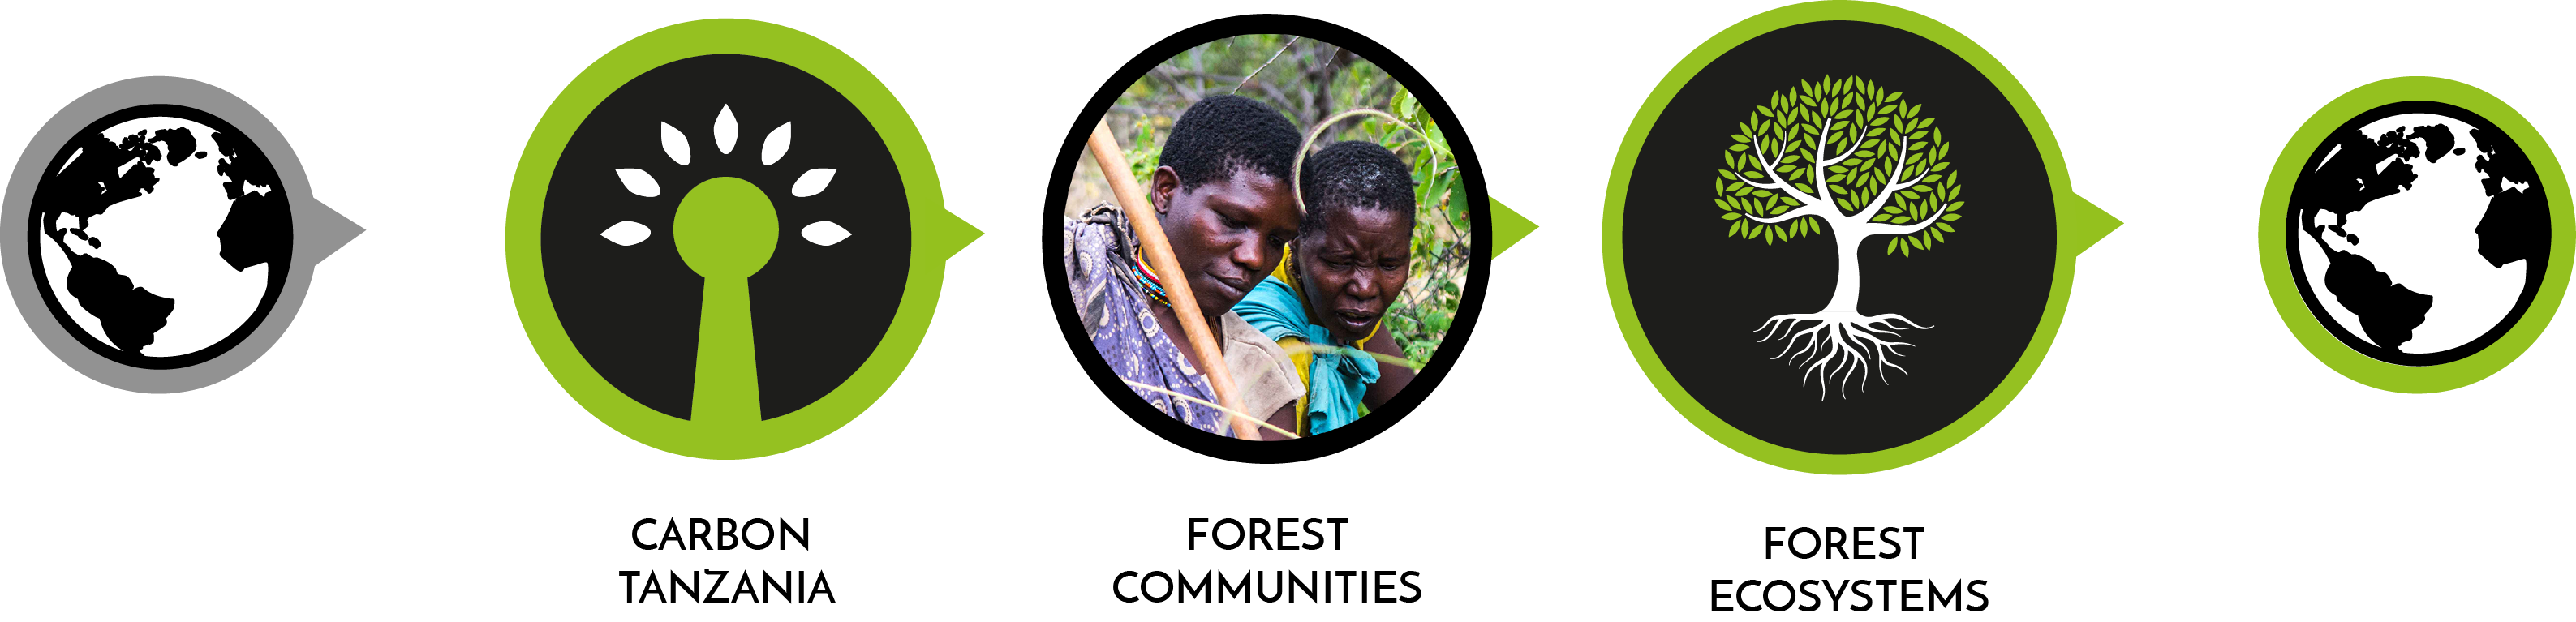 Forest conservation-forest communities-mitigating climate change icons - Carbon Tanzania